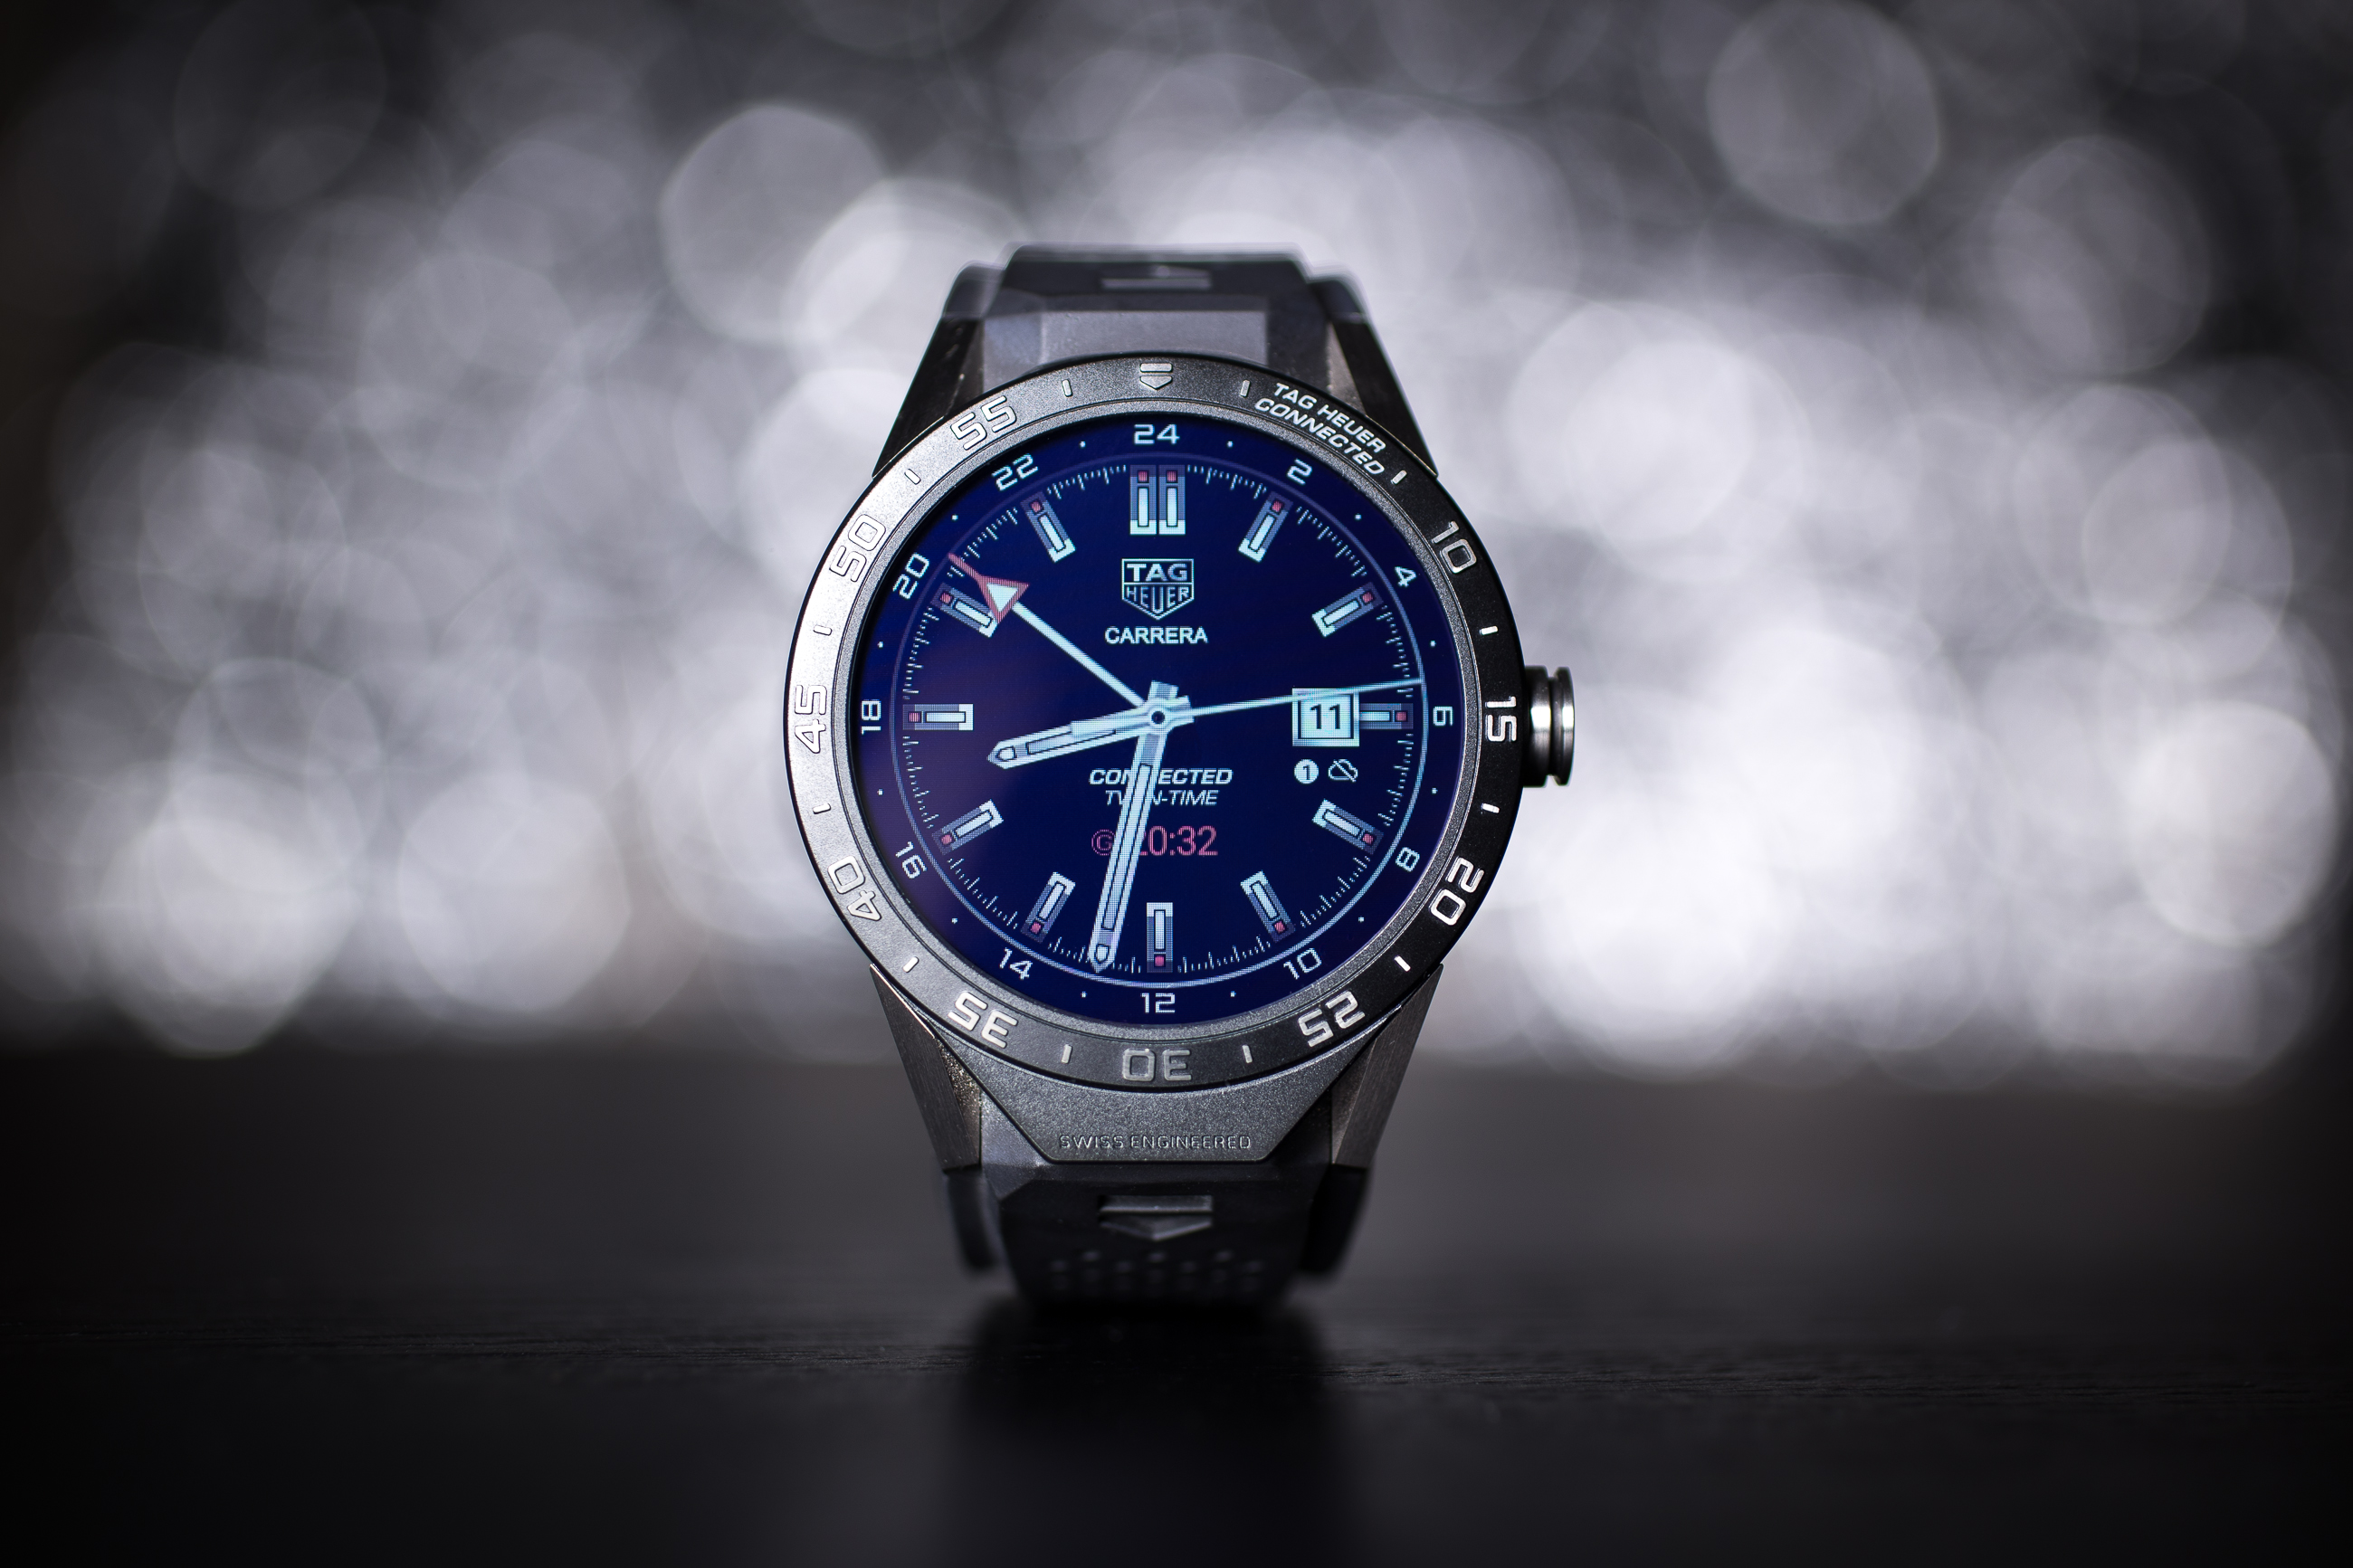 tag-heuer-connected-watch-10.jpg